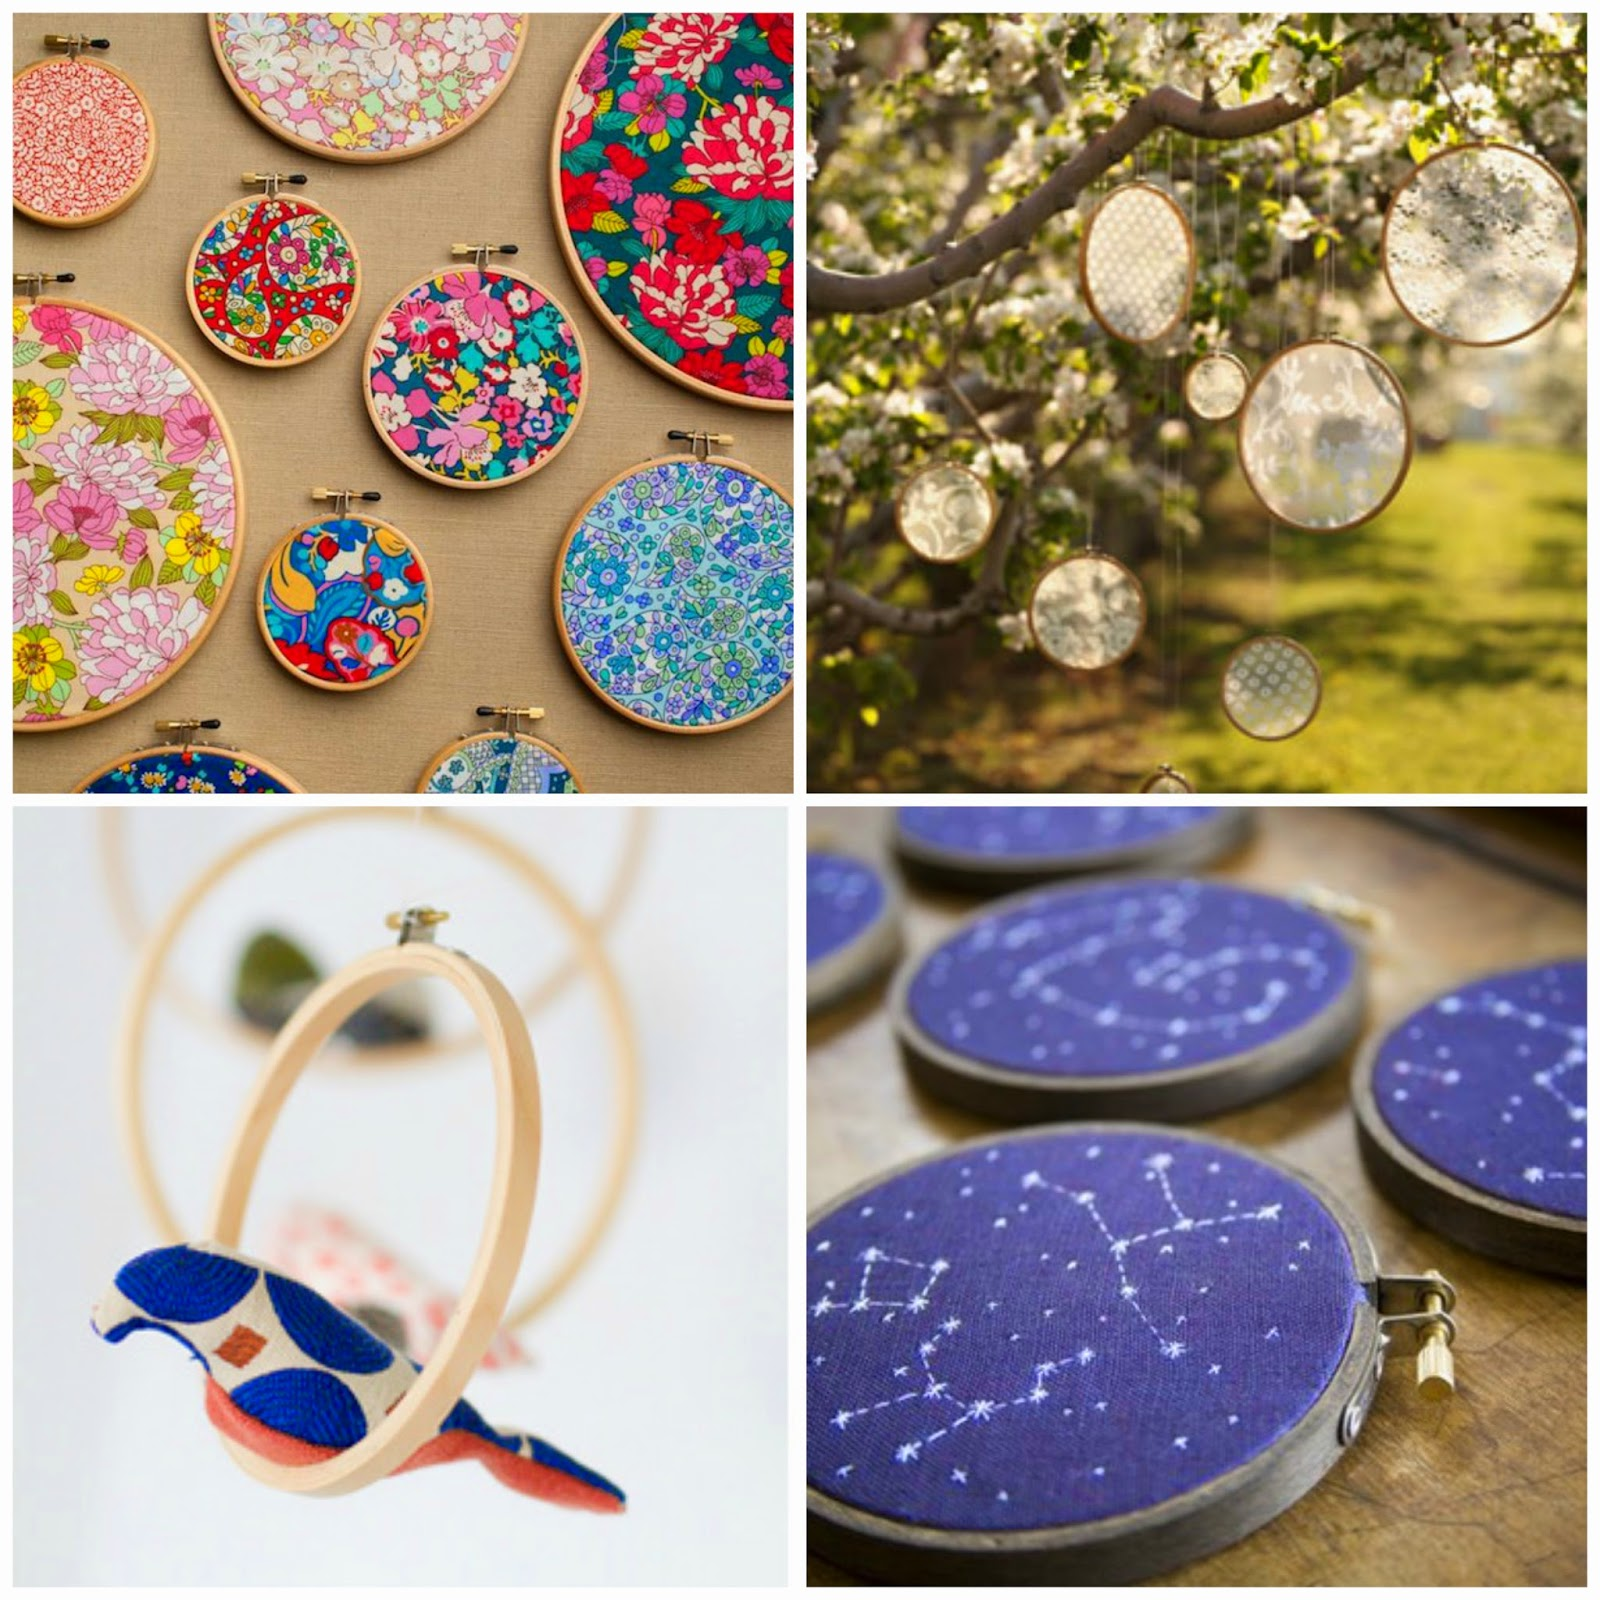 embroidery hoop craft trend to watch